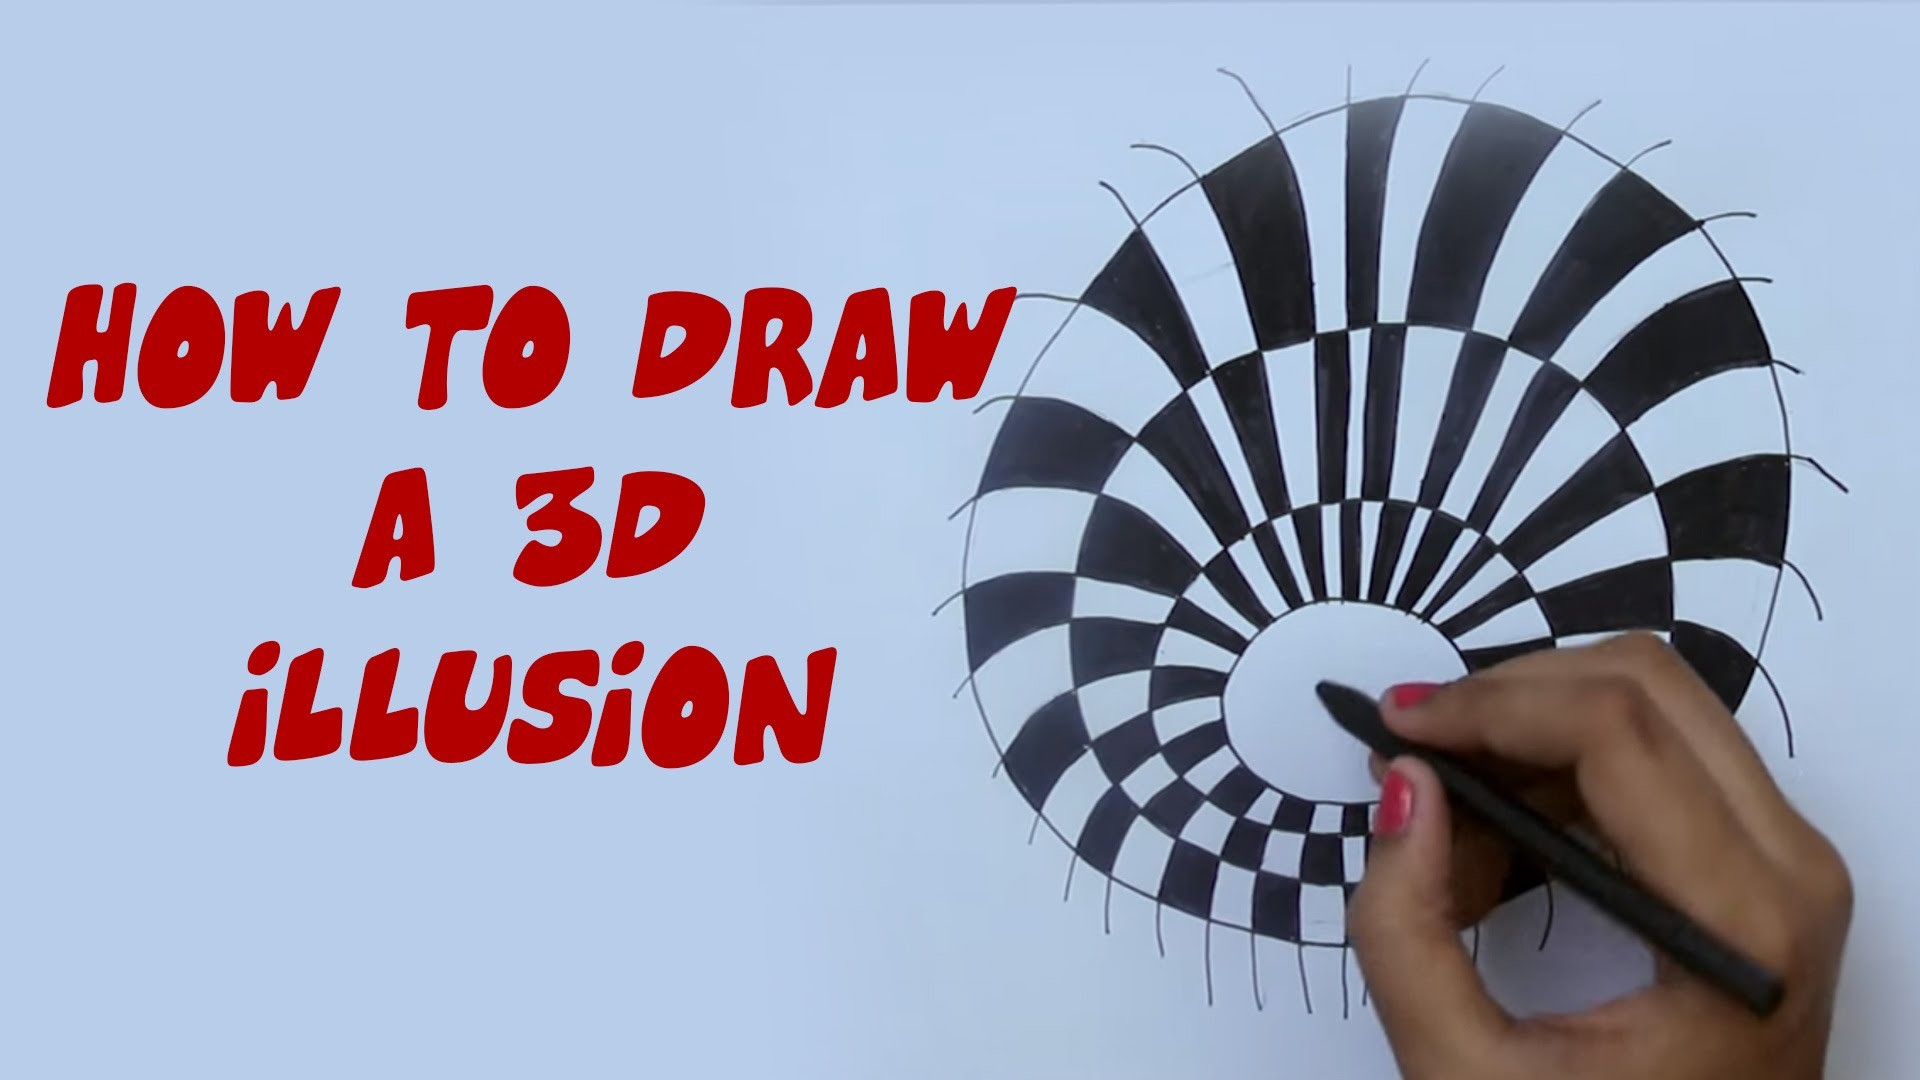 How To Draw A 3D Illusion | Easy Step By Step Ways To Learn Drawing